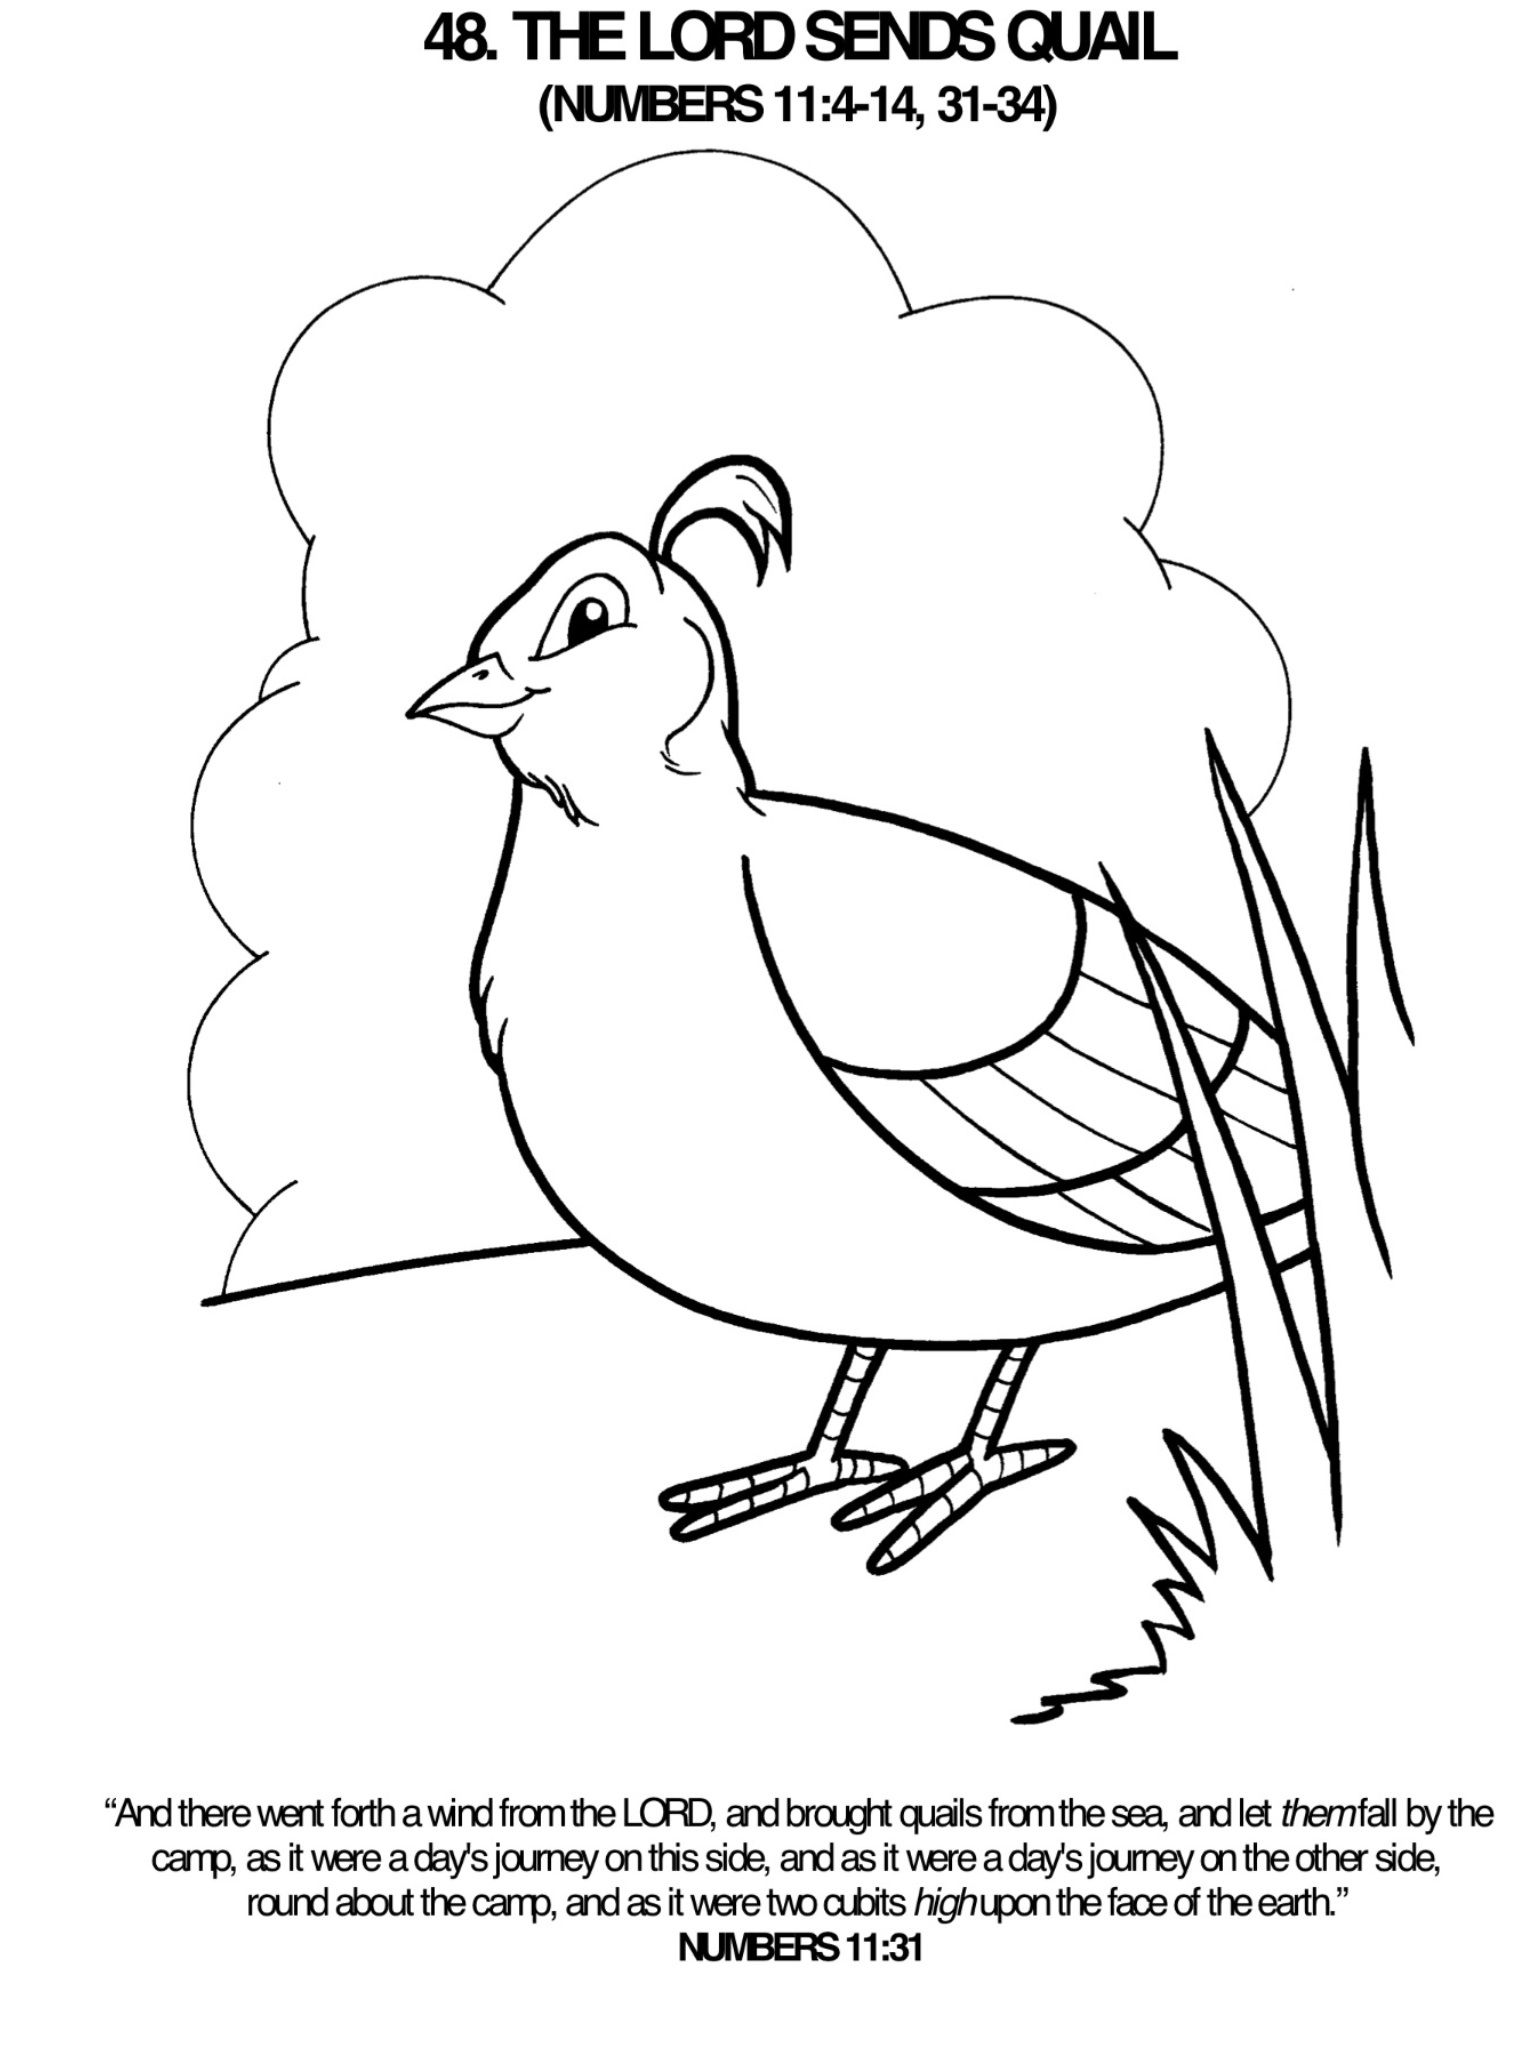 Coloring pages moses and ten commandments - Lord Sends A Quail Coloring Page